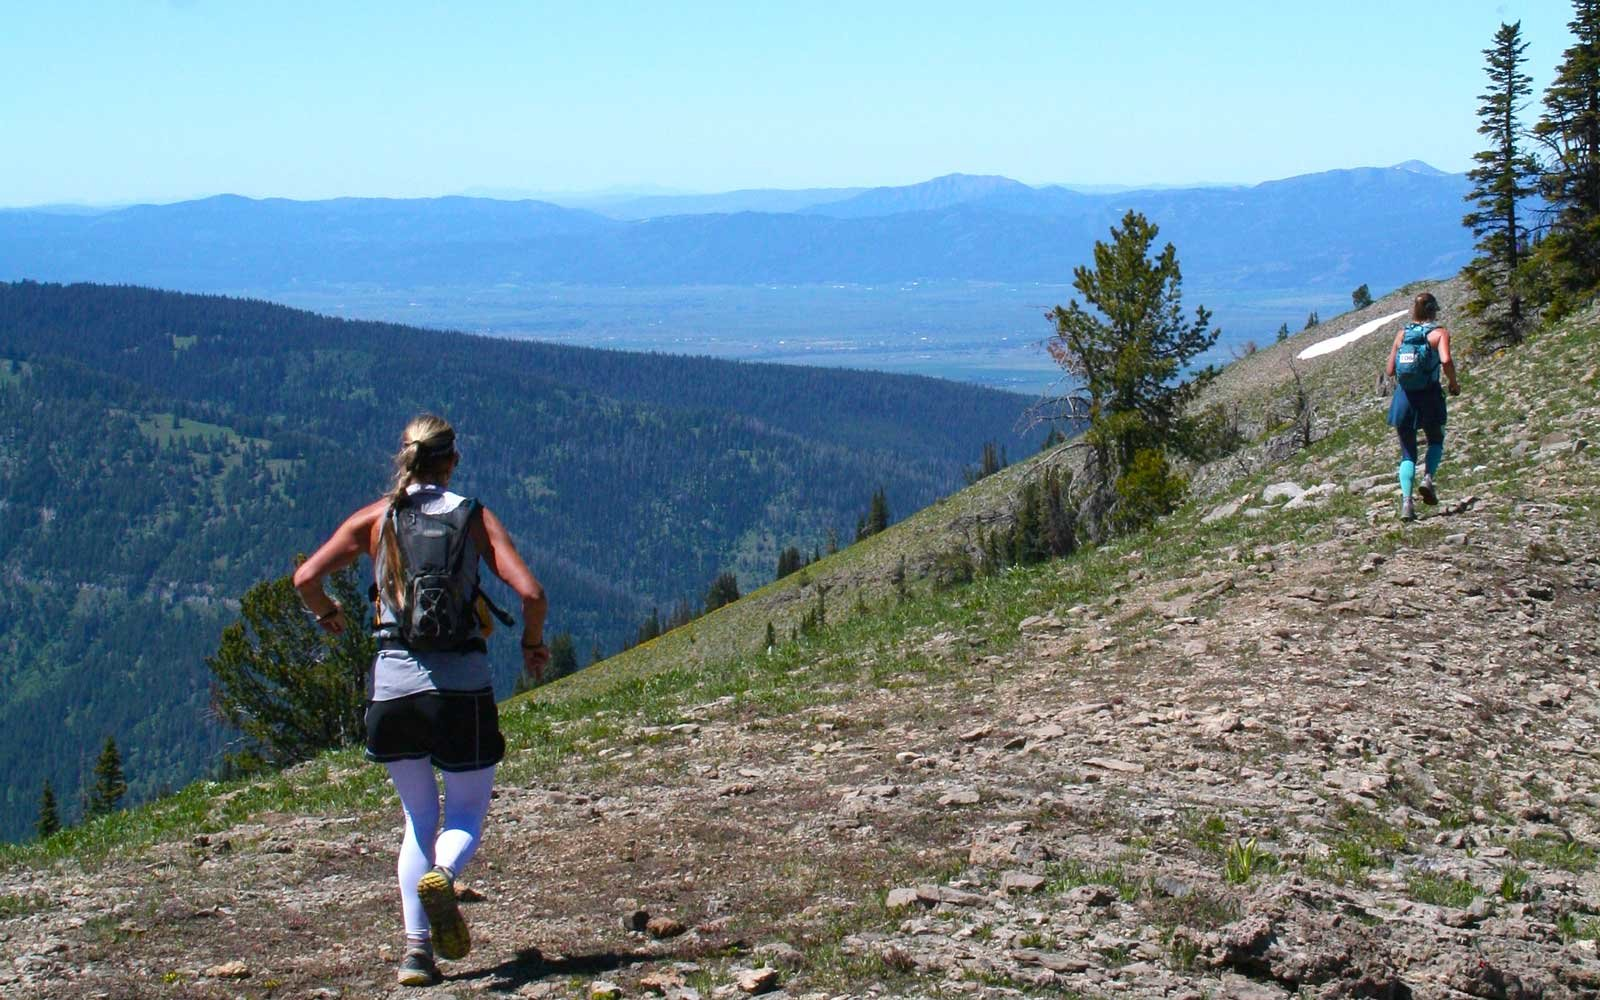 Teton Ogre Adventure Race in Teton Valley, Idaho (June 23-24, 2018)